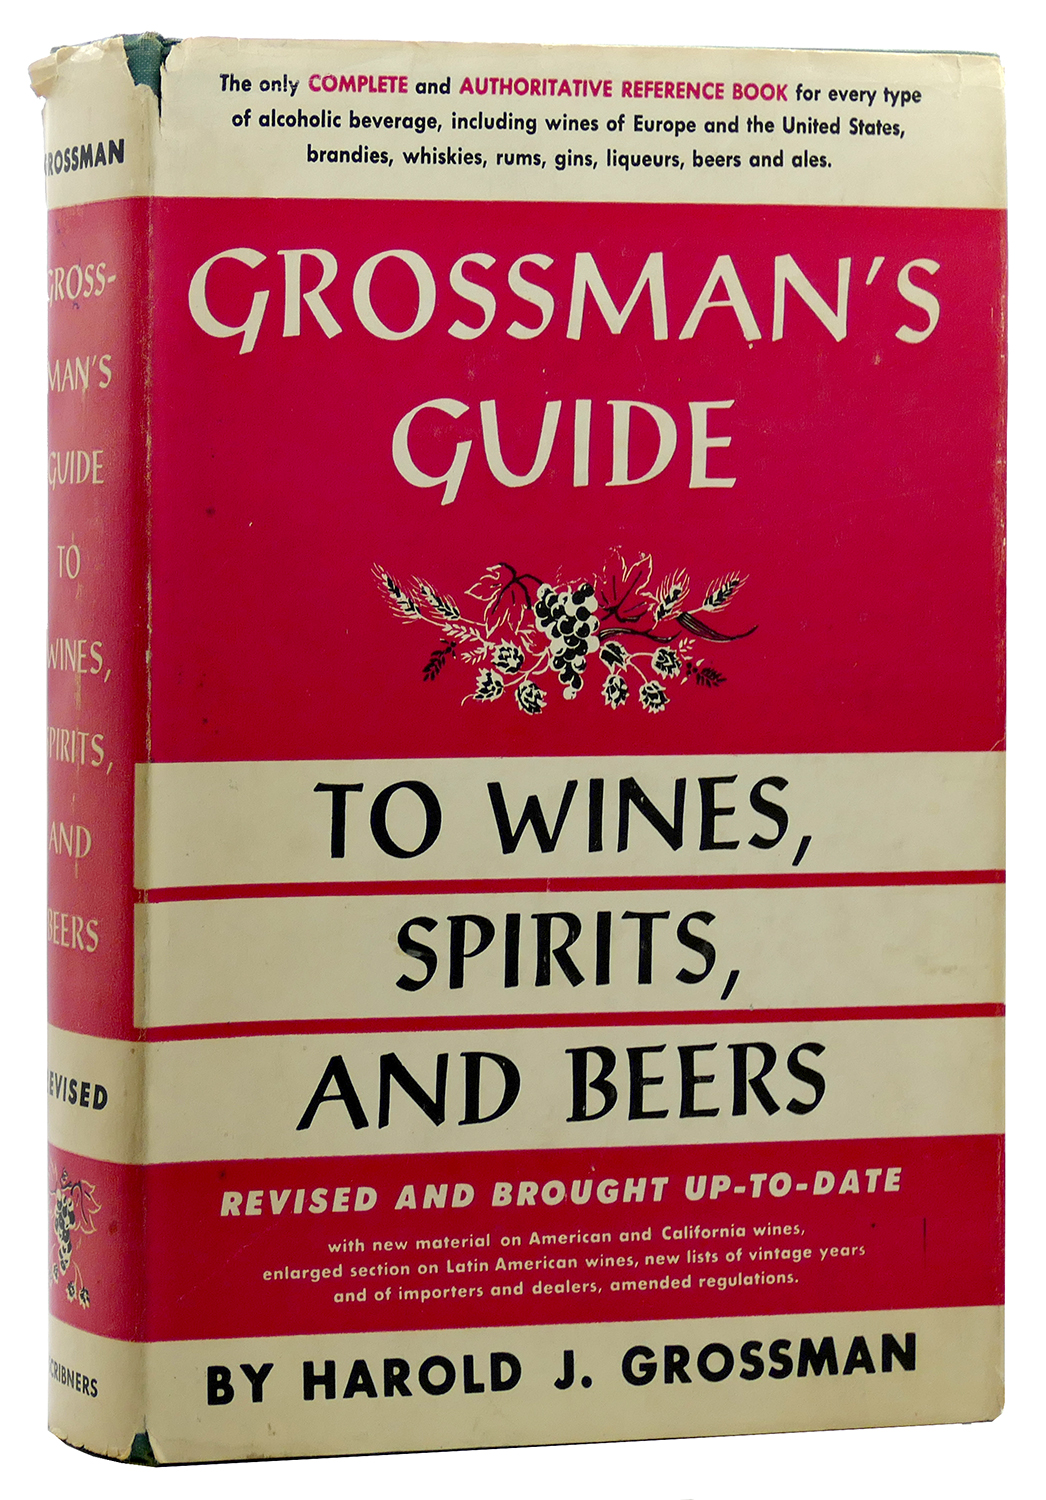 GROSSMAN'S GUIDE TO WINES, SPIRITS, AND BEERS Harold J. Grossman [ ] [Hardcover] Very Good in a Good price clipped dust jacket. Edge wear with chips and tears including a one inch tear on back spine edge. Some fading to spine. ; 8vo 8  - 9  tall; Original dust jacket protected by archival Brodart cover. All domestic orders shipped protected in a Box.